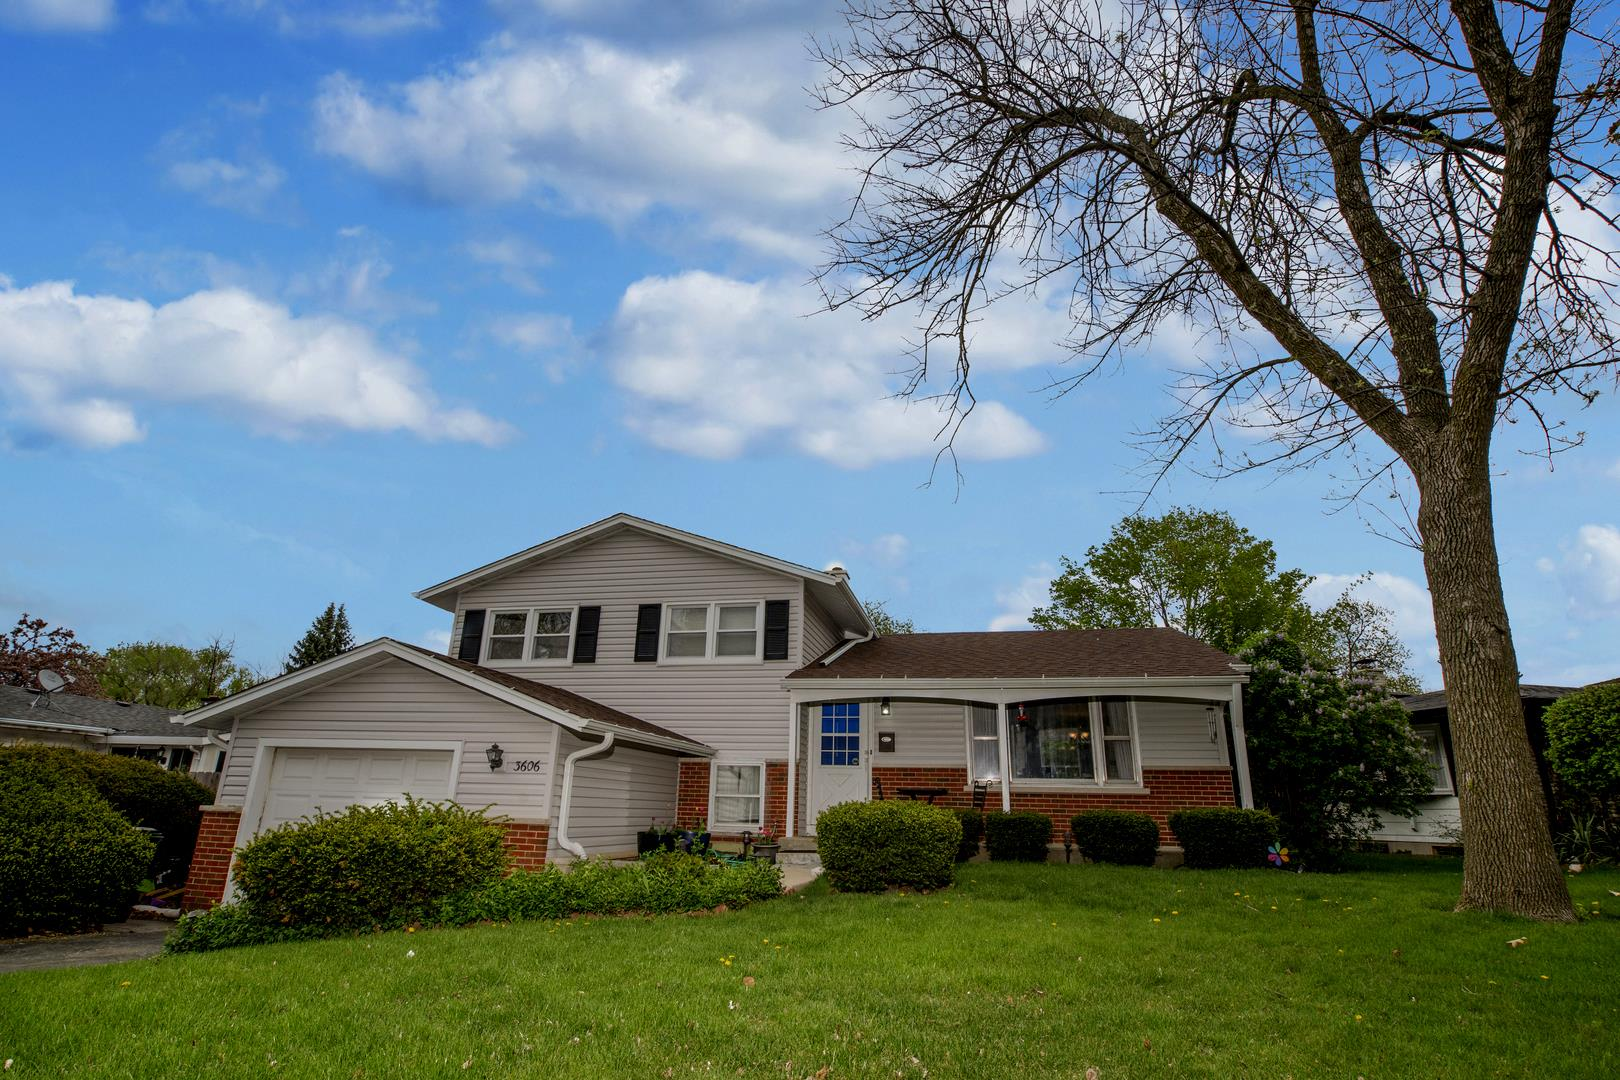 3606 Brookmeade Drive, Rolling Meadows, IL 60008 - #: 10528767